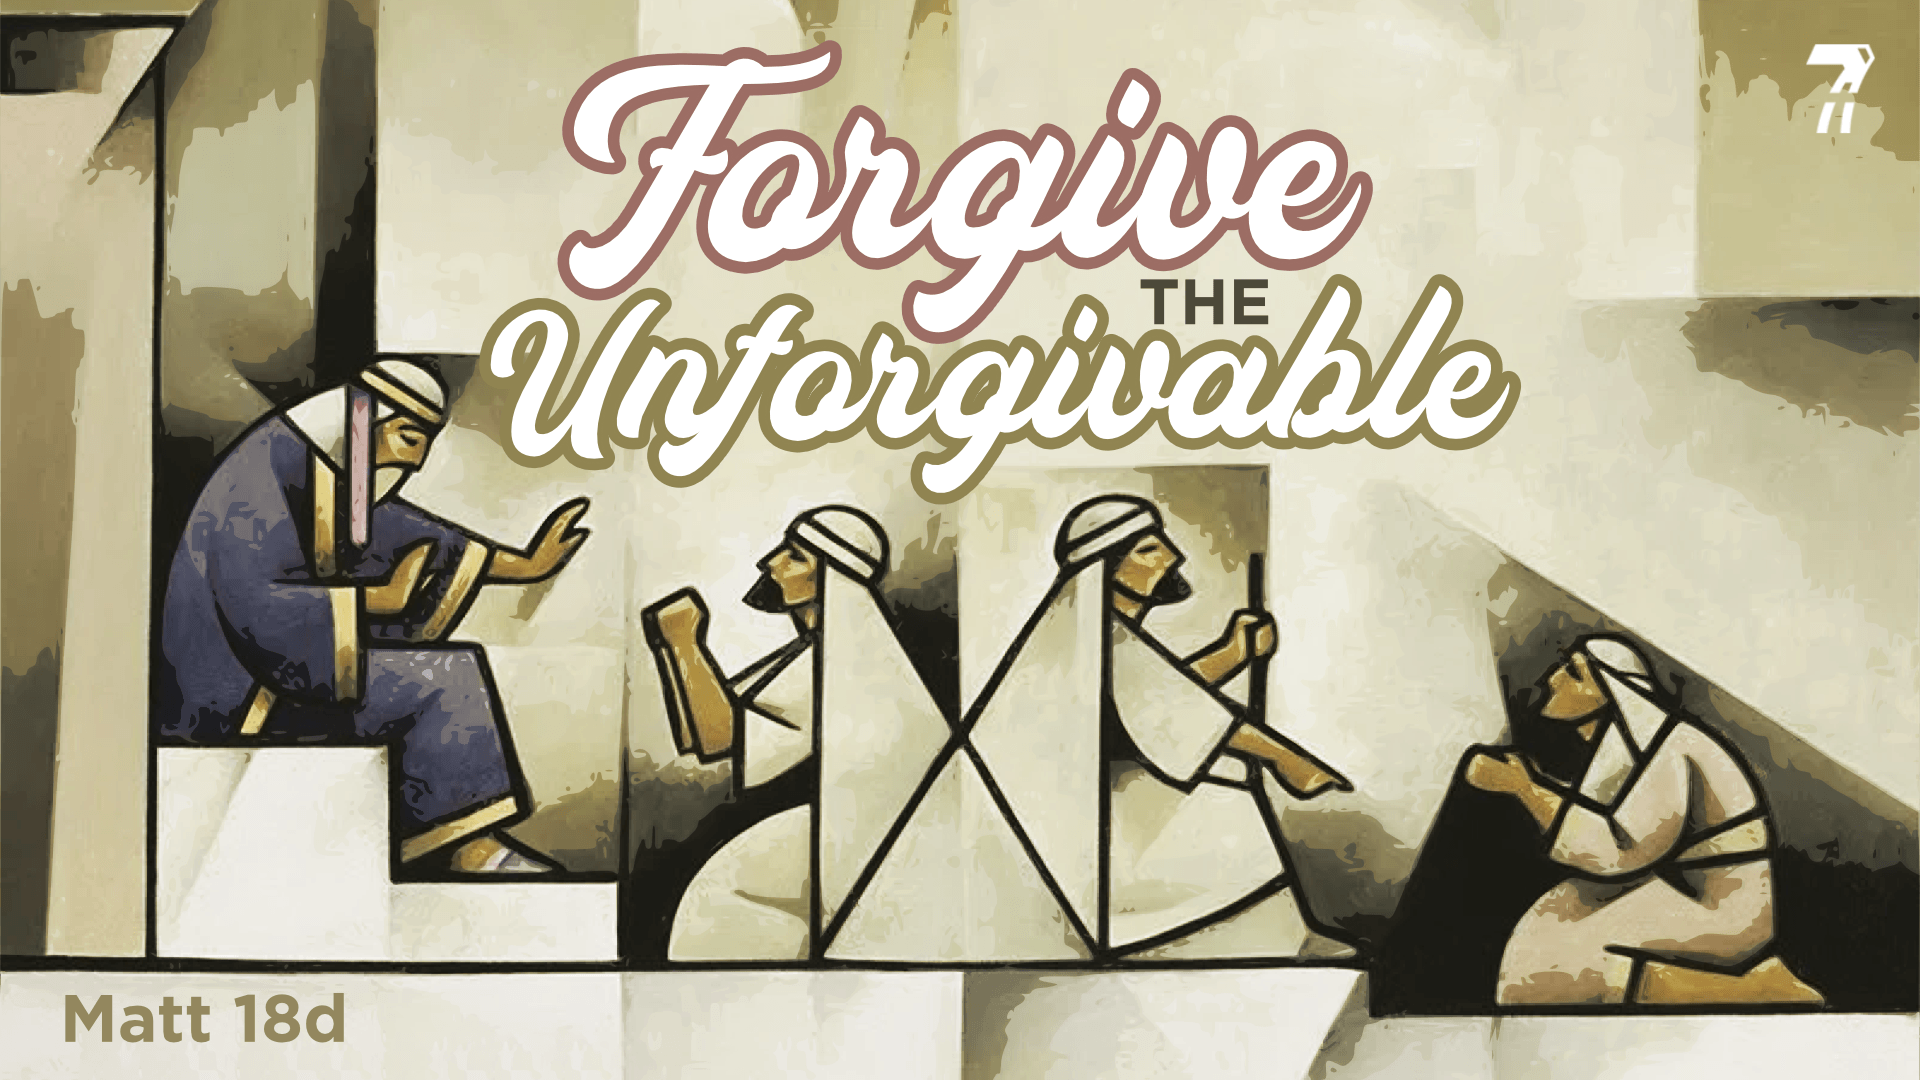 Matthew 18d – Forgive the Unforgivable